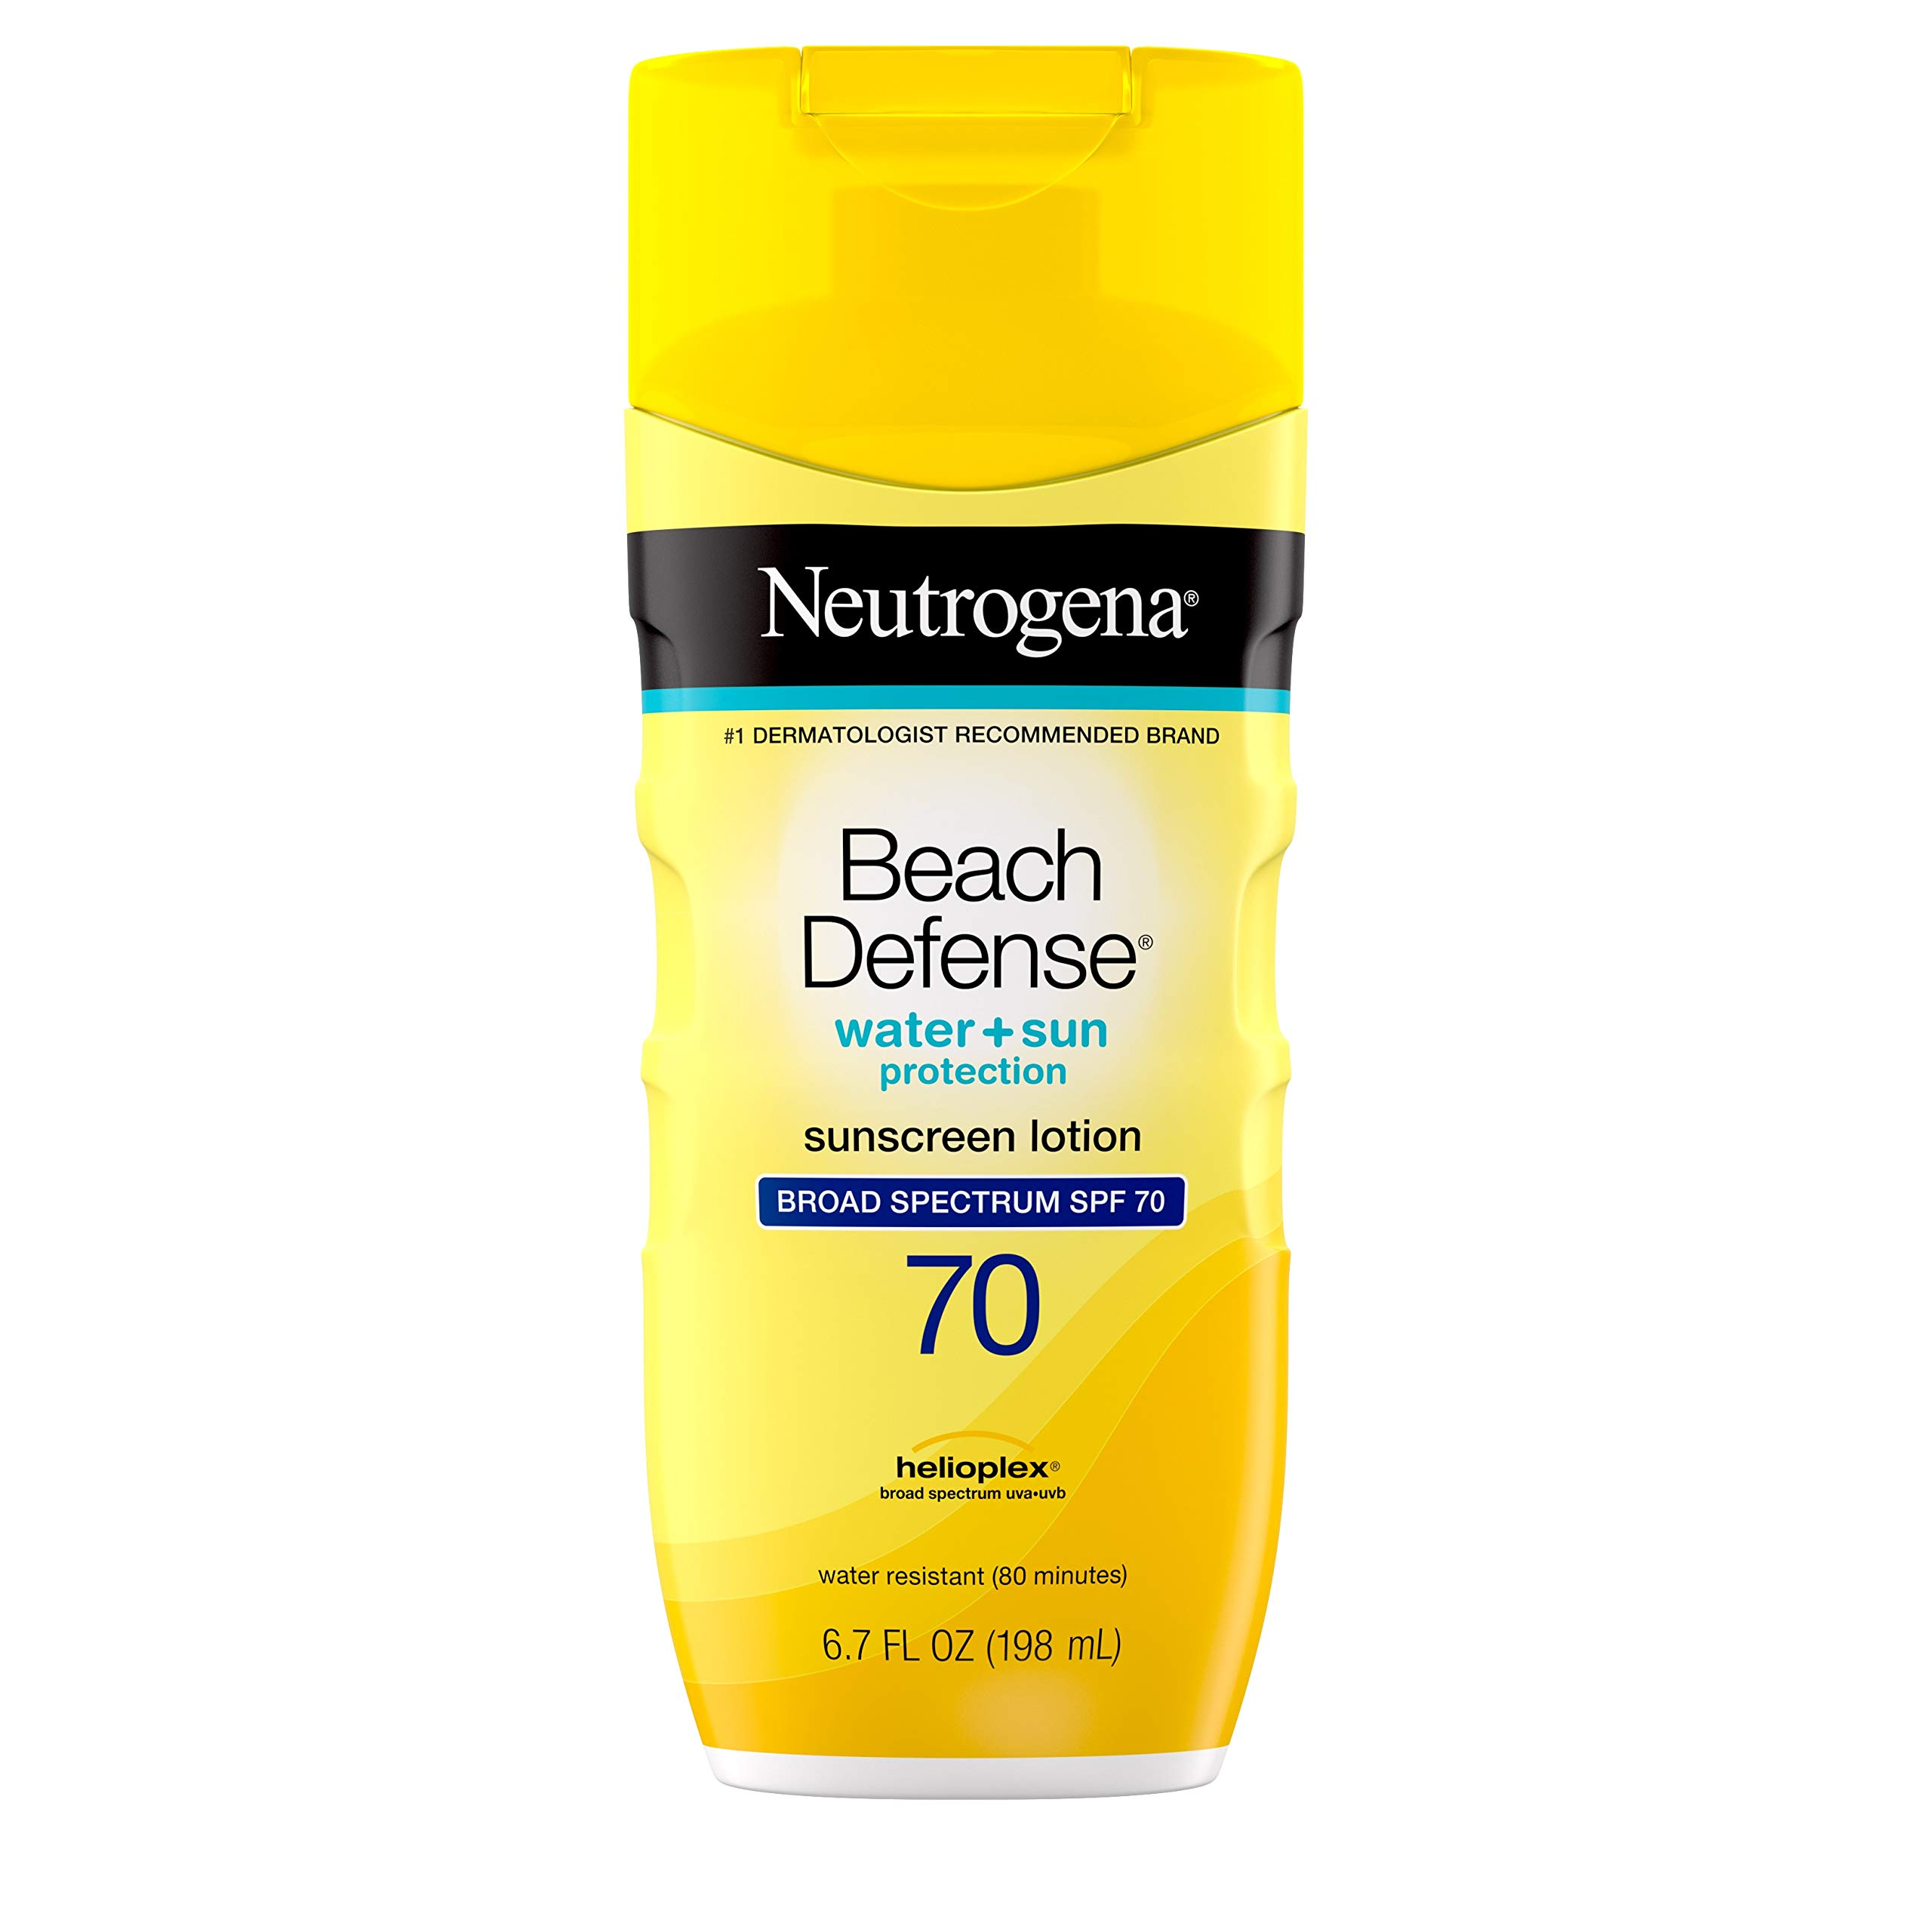 Neutrogena Beach Defense Water Resistant Sunscreen Body Lotion with Broad Spectrum SPF 70, Oil-Free and Fast-Absorbing, 6.7 oz